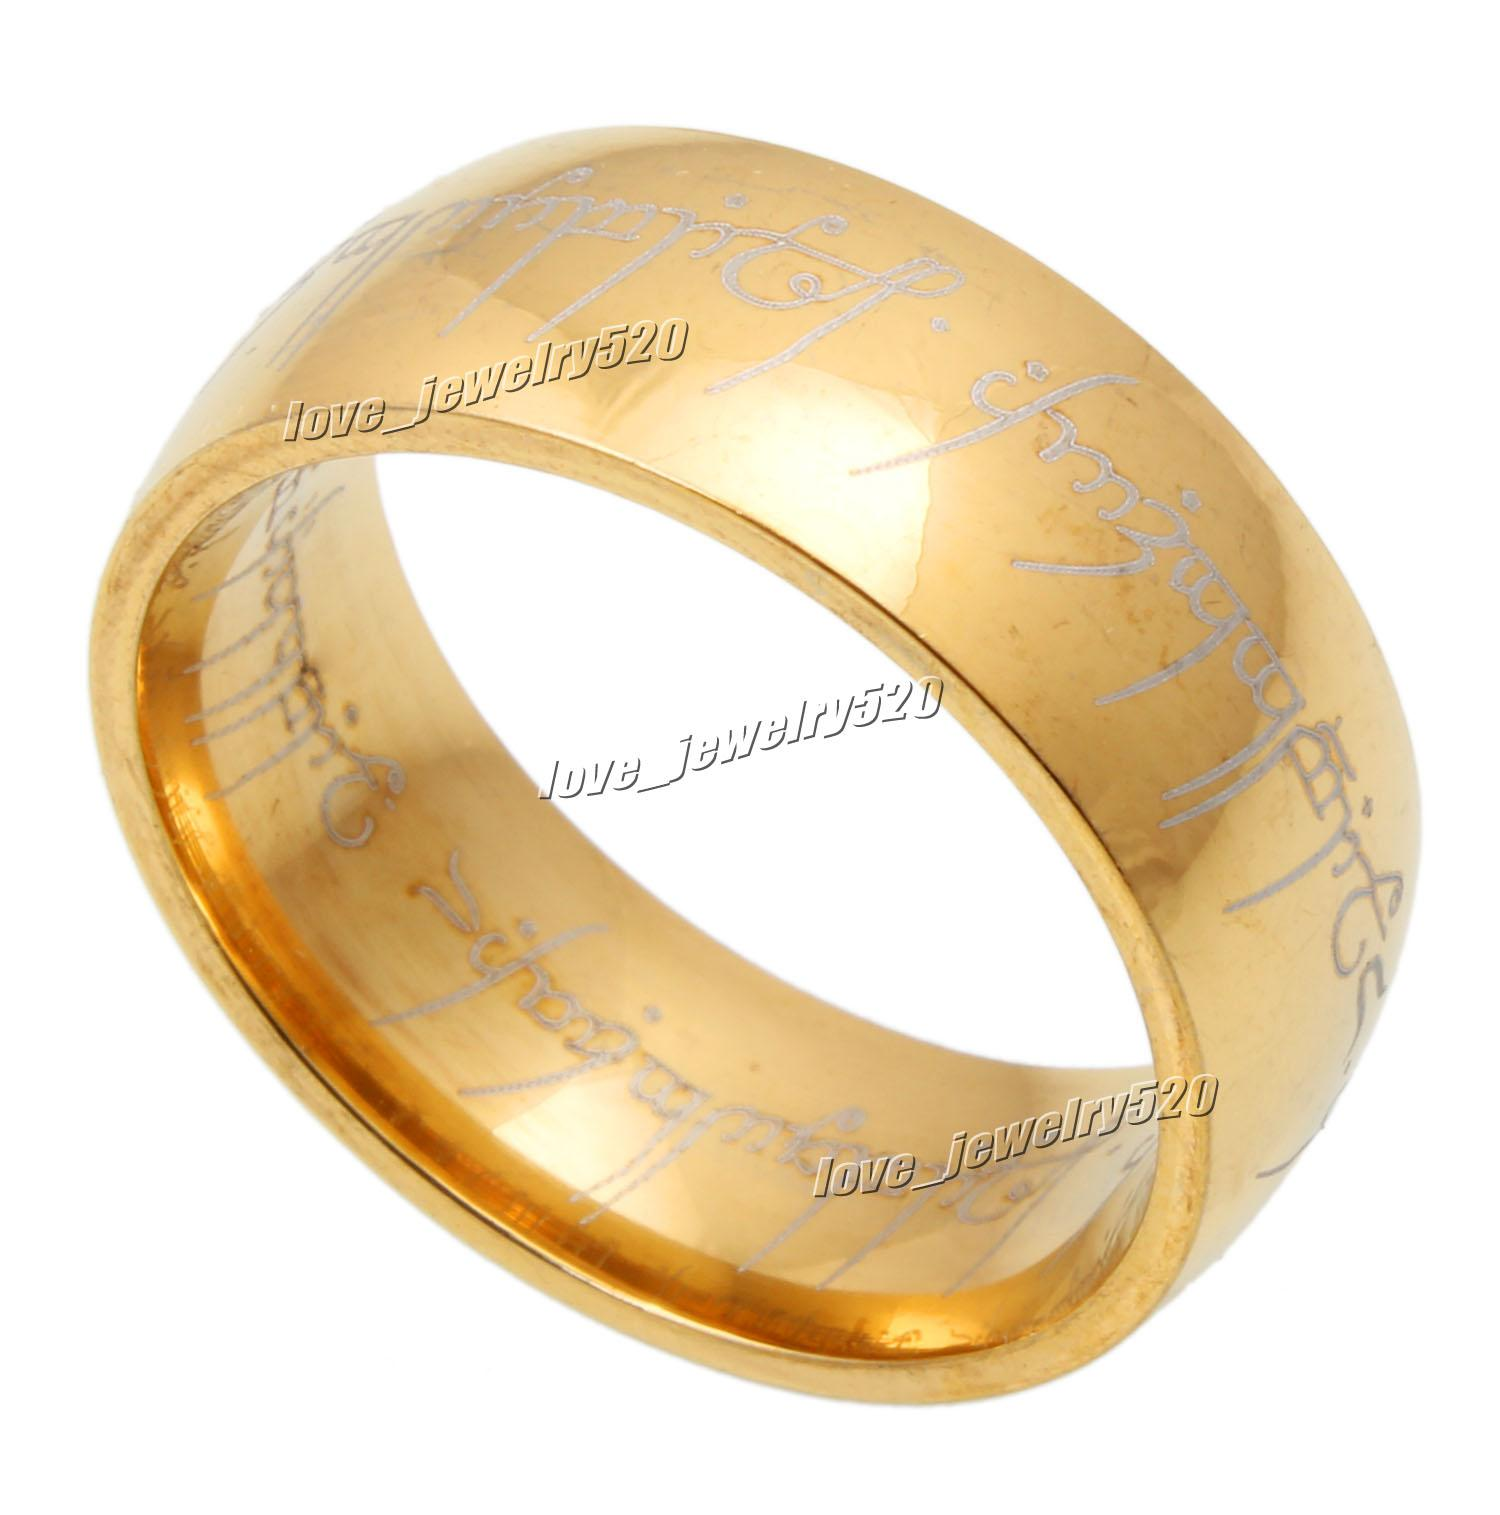 thick com celtic rings ip jewelry amazon irish jewellery gold stainless steel for ring goth tribal gothic women dp with